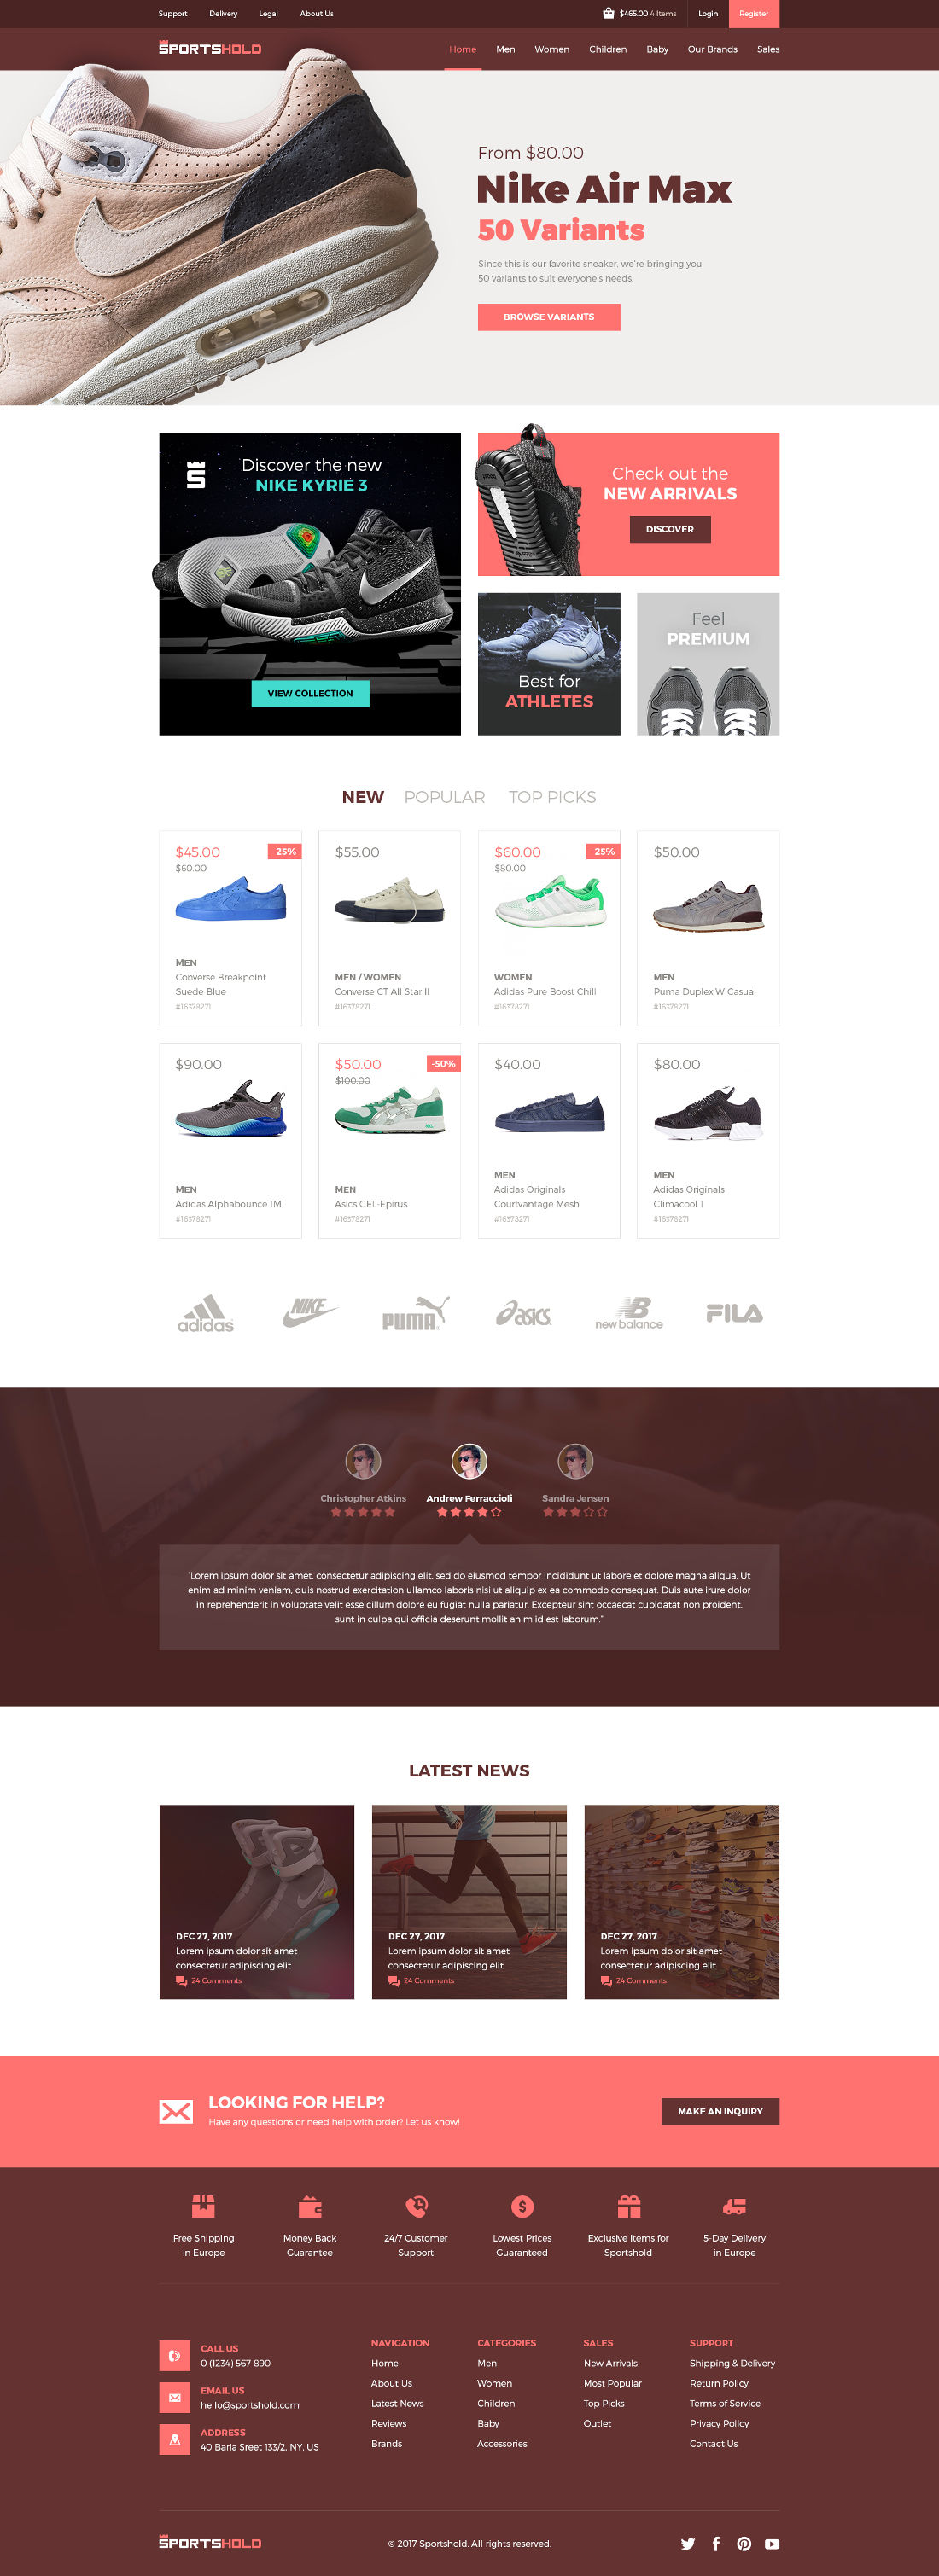 Free Sportshold eCommerce Landing Page